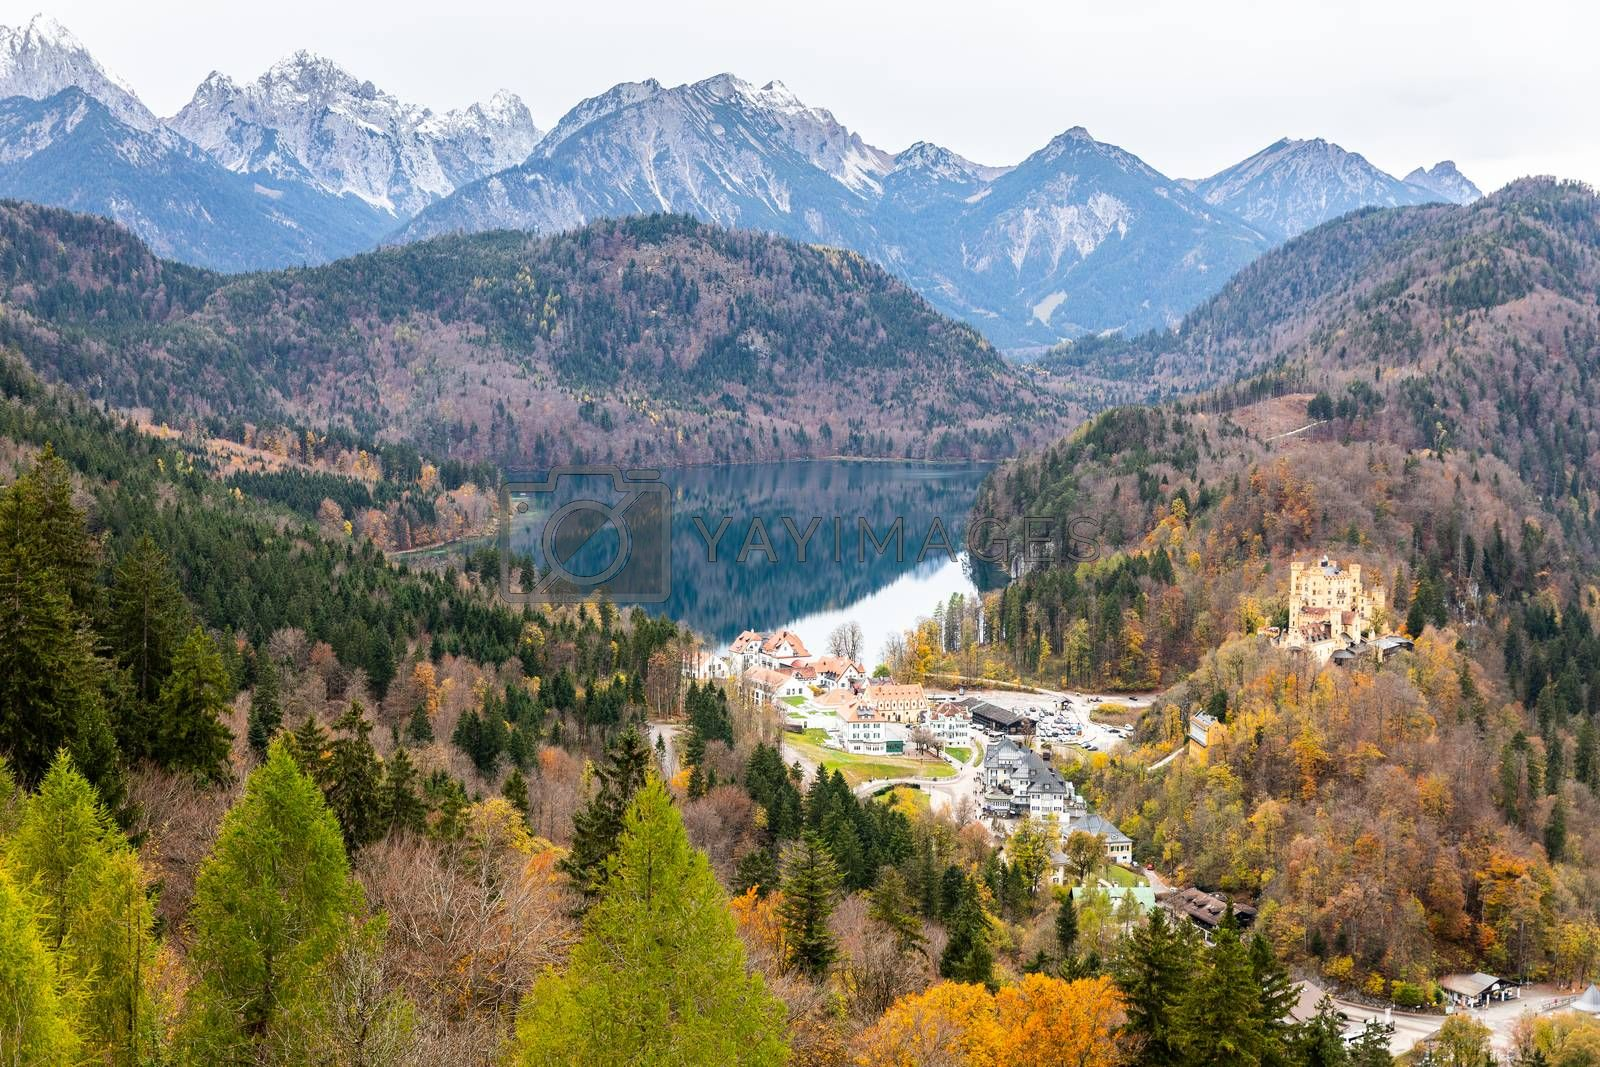 Aerial view over Alpsee lake and rural town surrounding by mountain range in autumn.